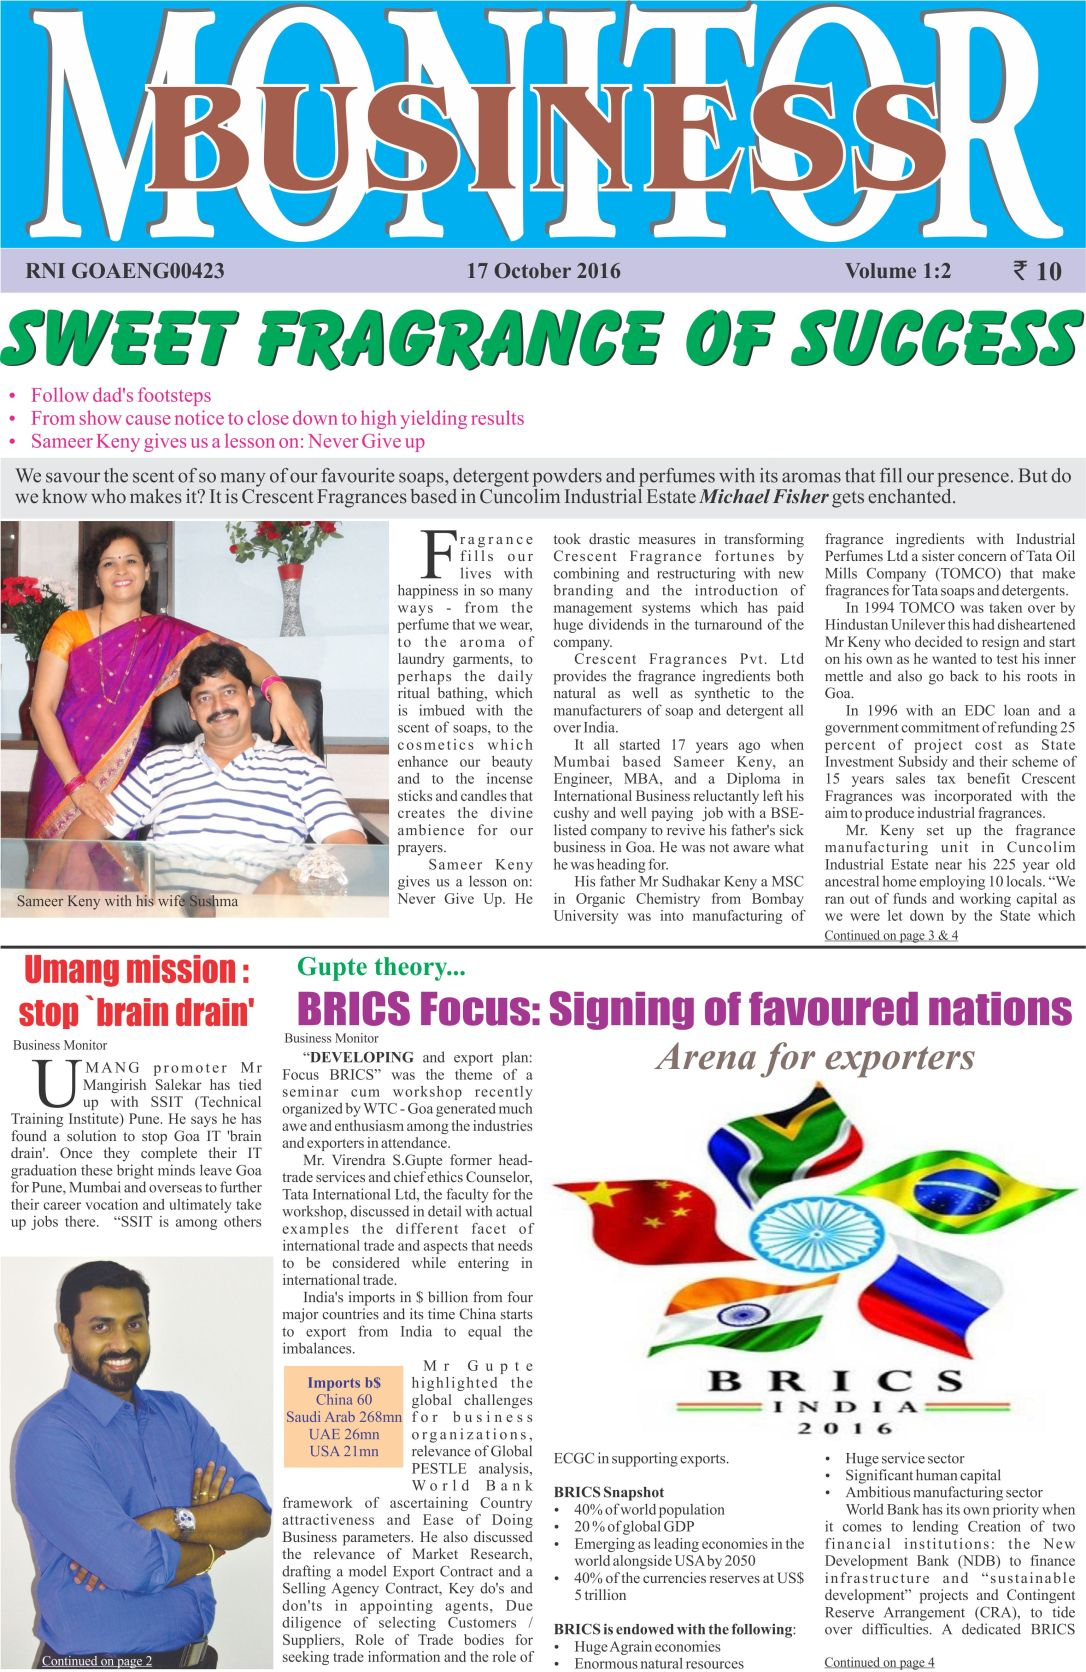 Business Monitor Cover story Page 1